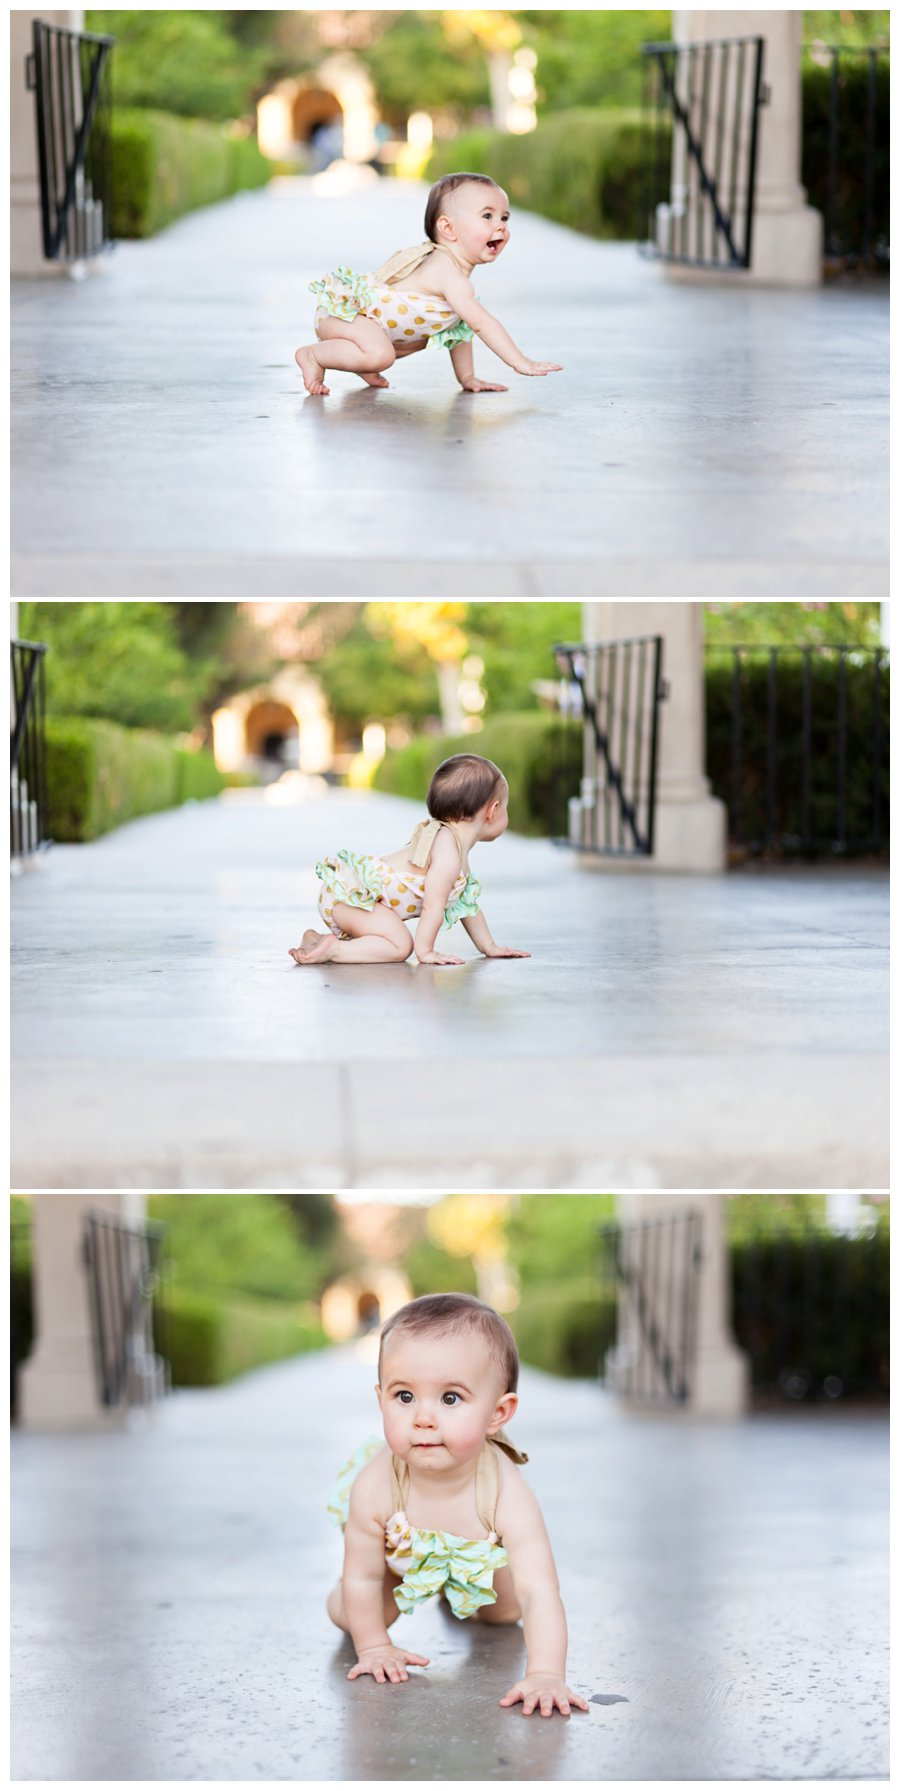 One Year Old Crawling Portraits by Just Maggie Photography - Los Angeles Baby Photographer